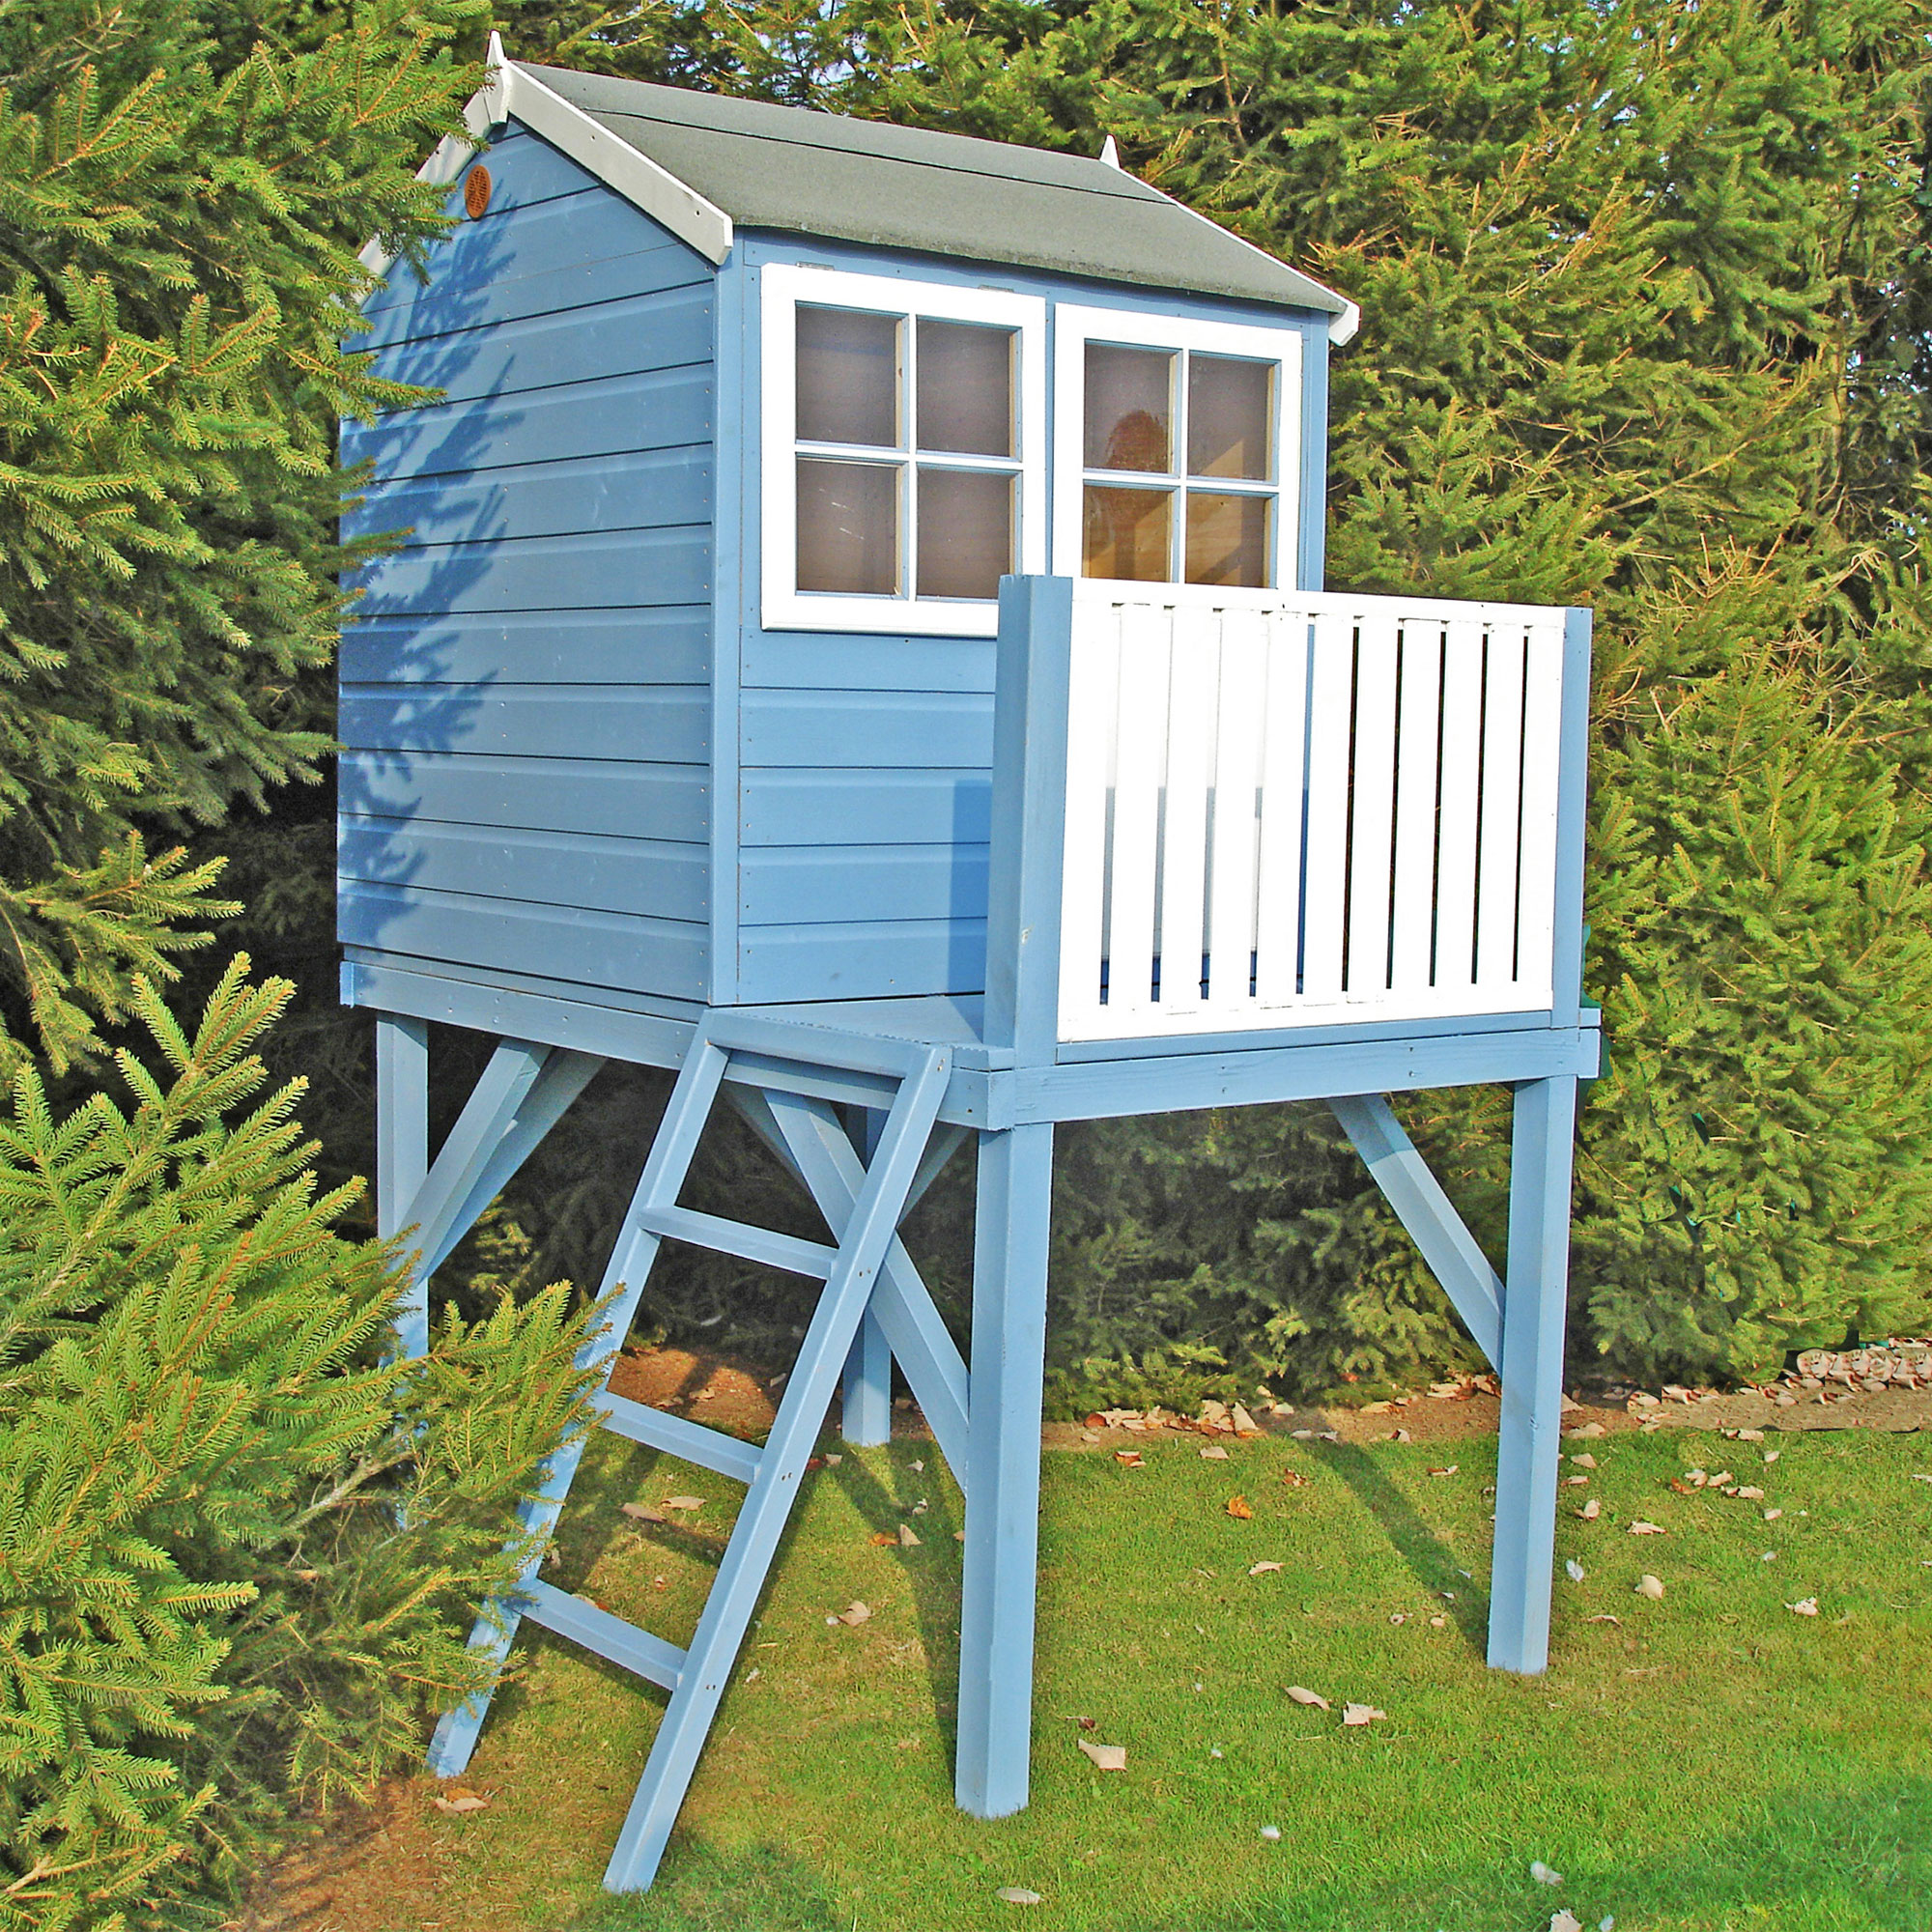 4x6 Shire Bunny Tower Kids Wooden Playhouse